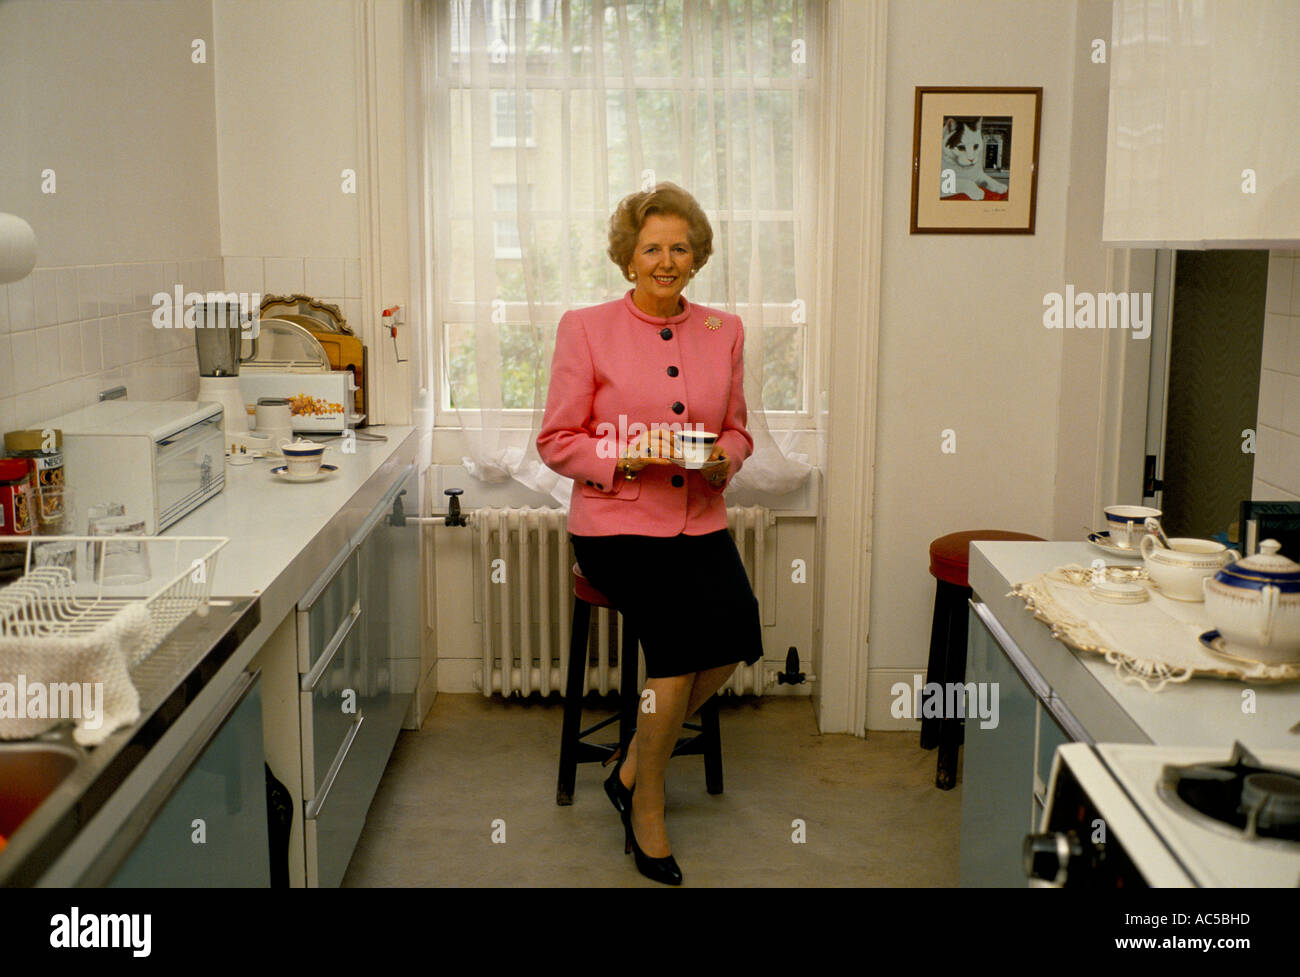 Thatcher Downing Street Margaret Thatcher Having A Cup Of